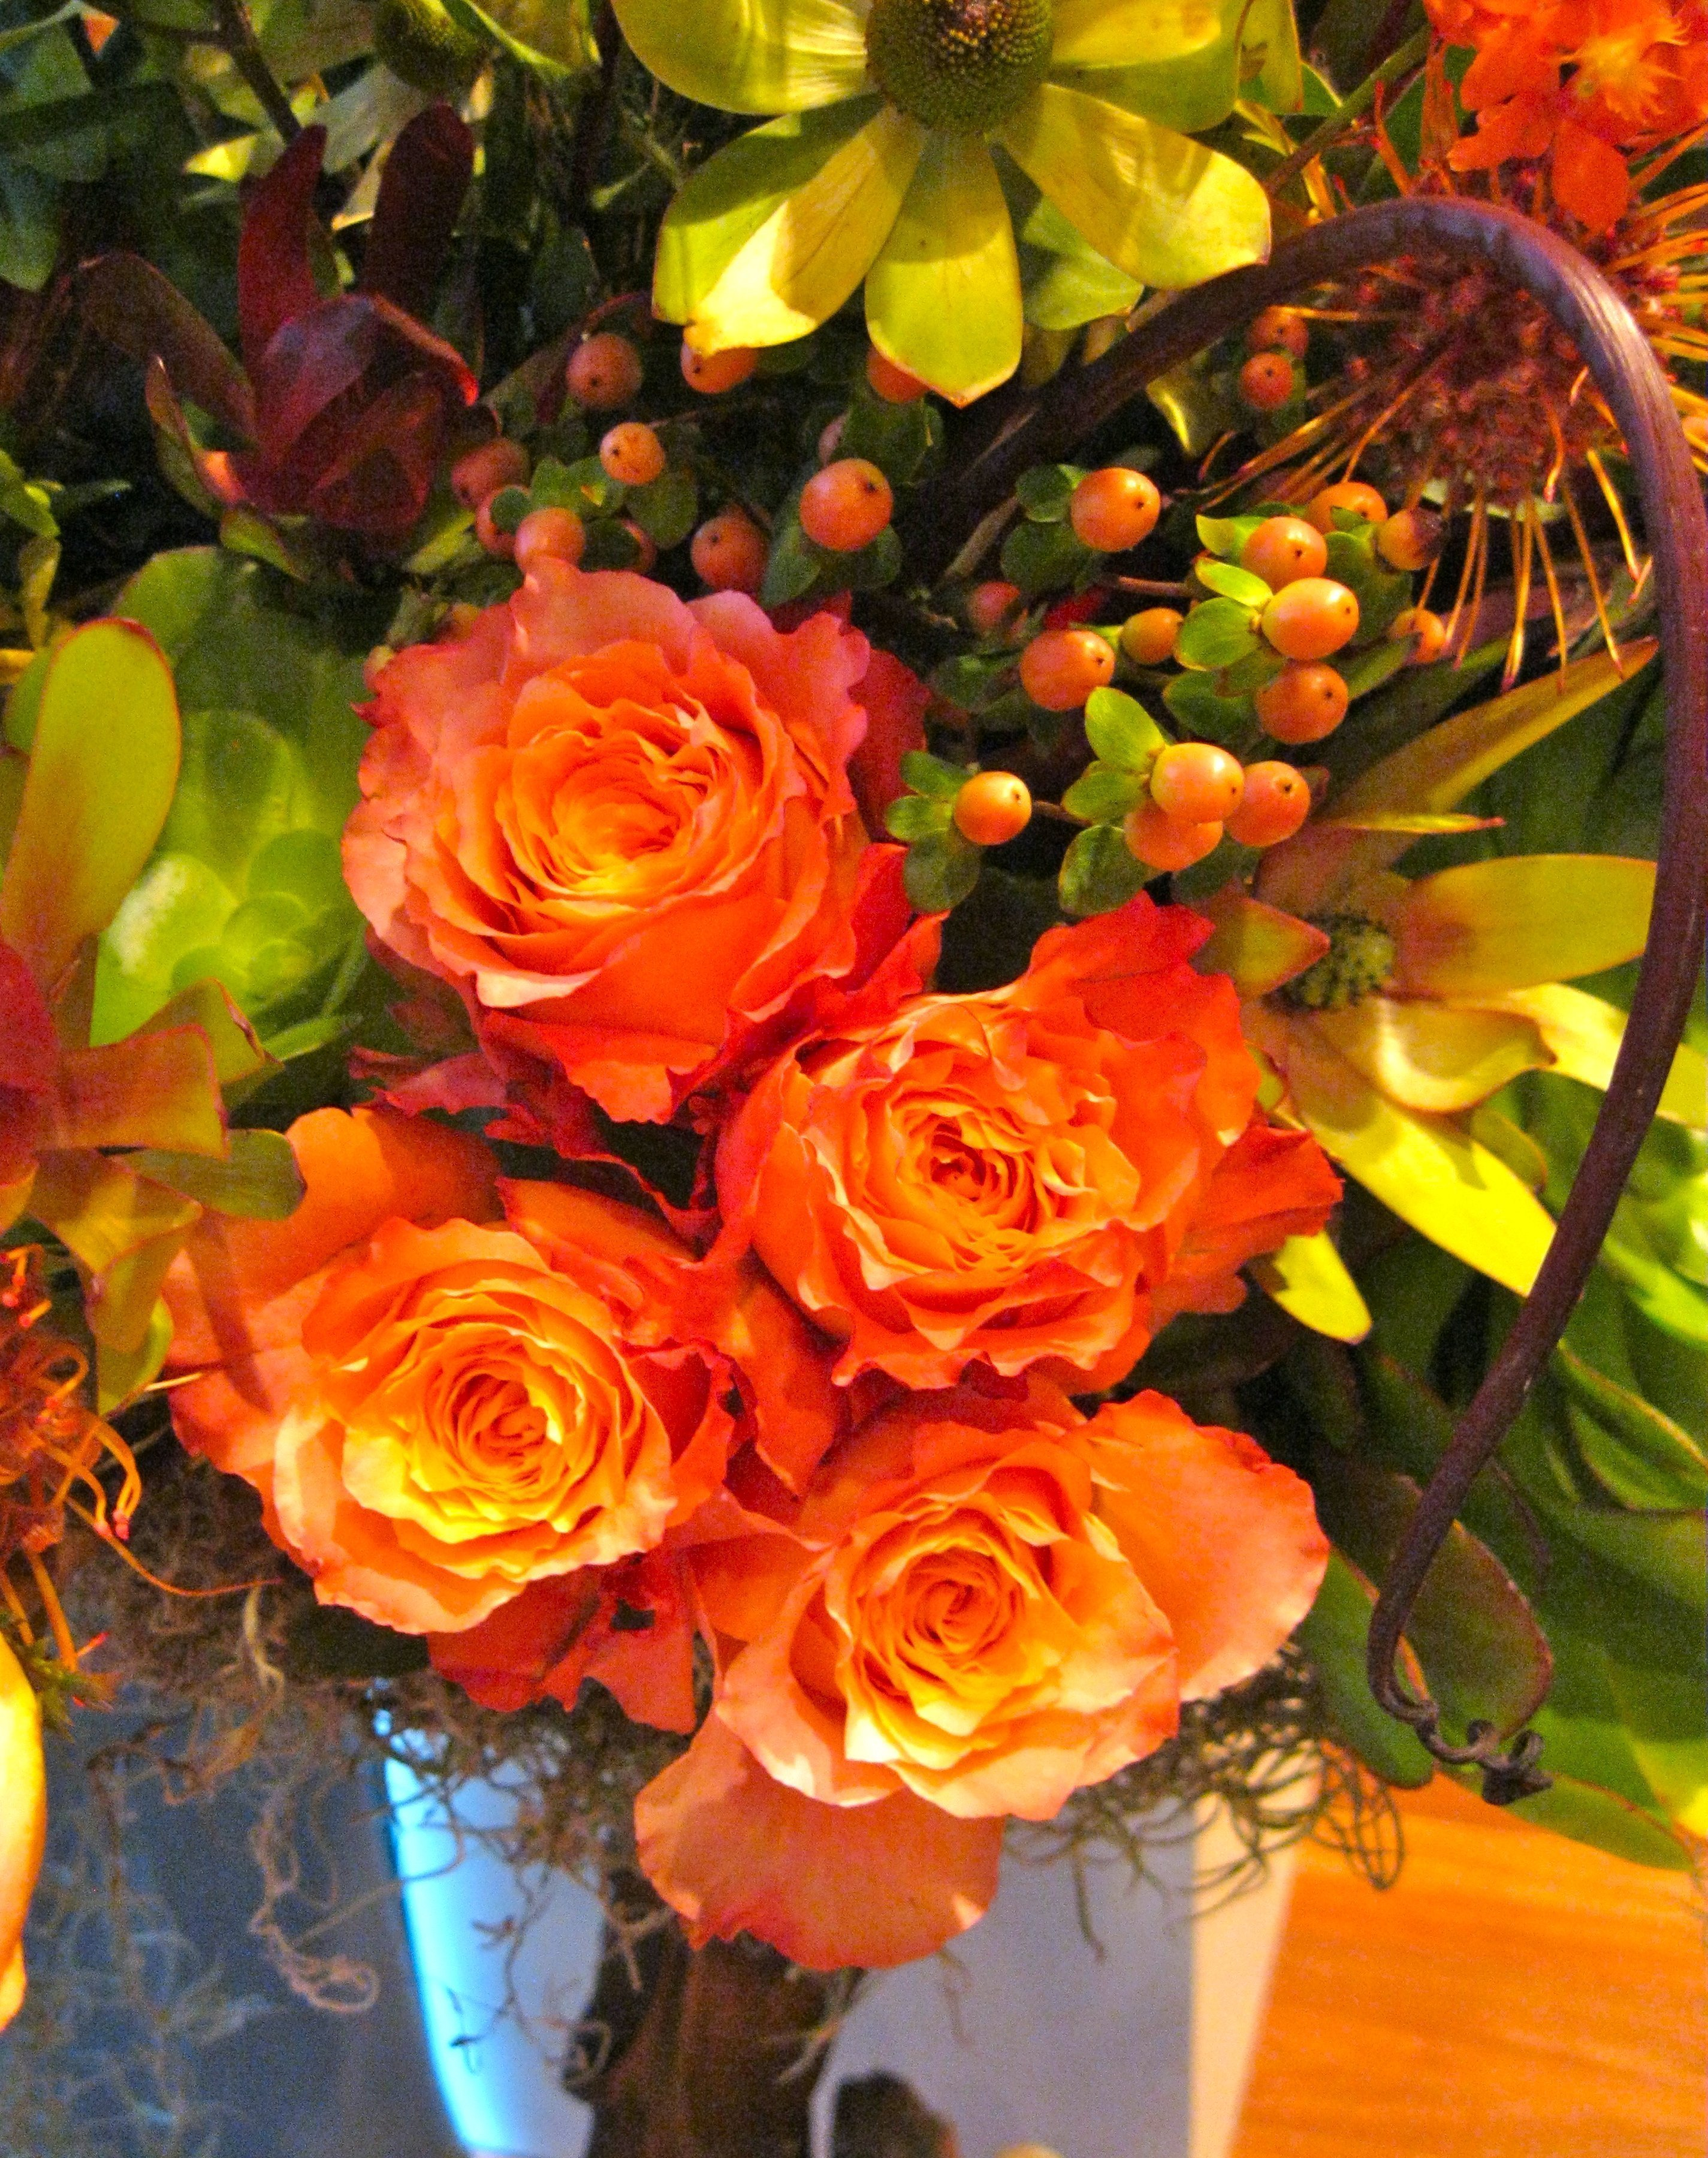 Big orange arrangement - detail